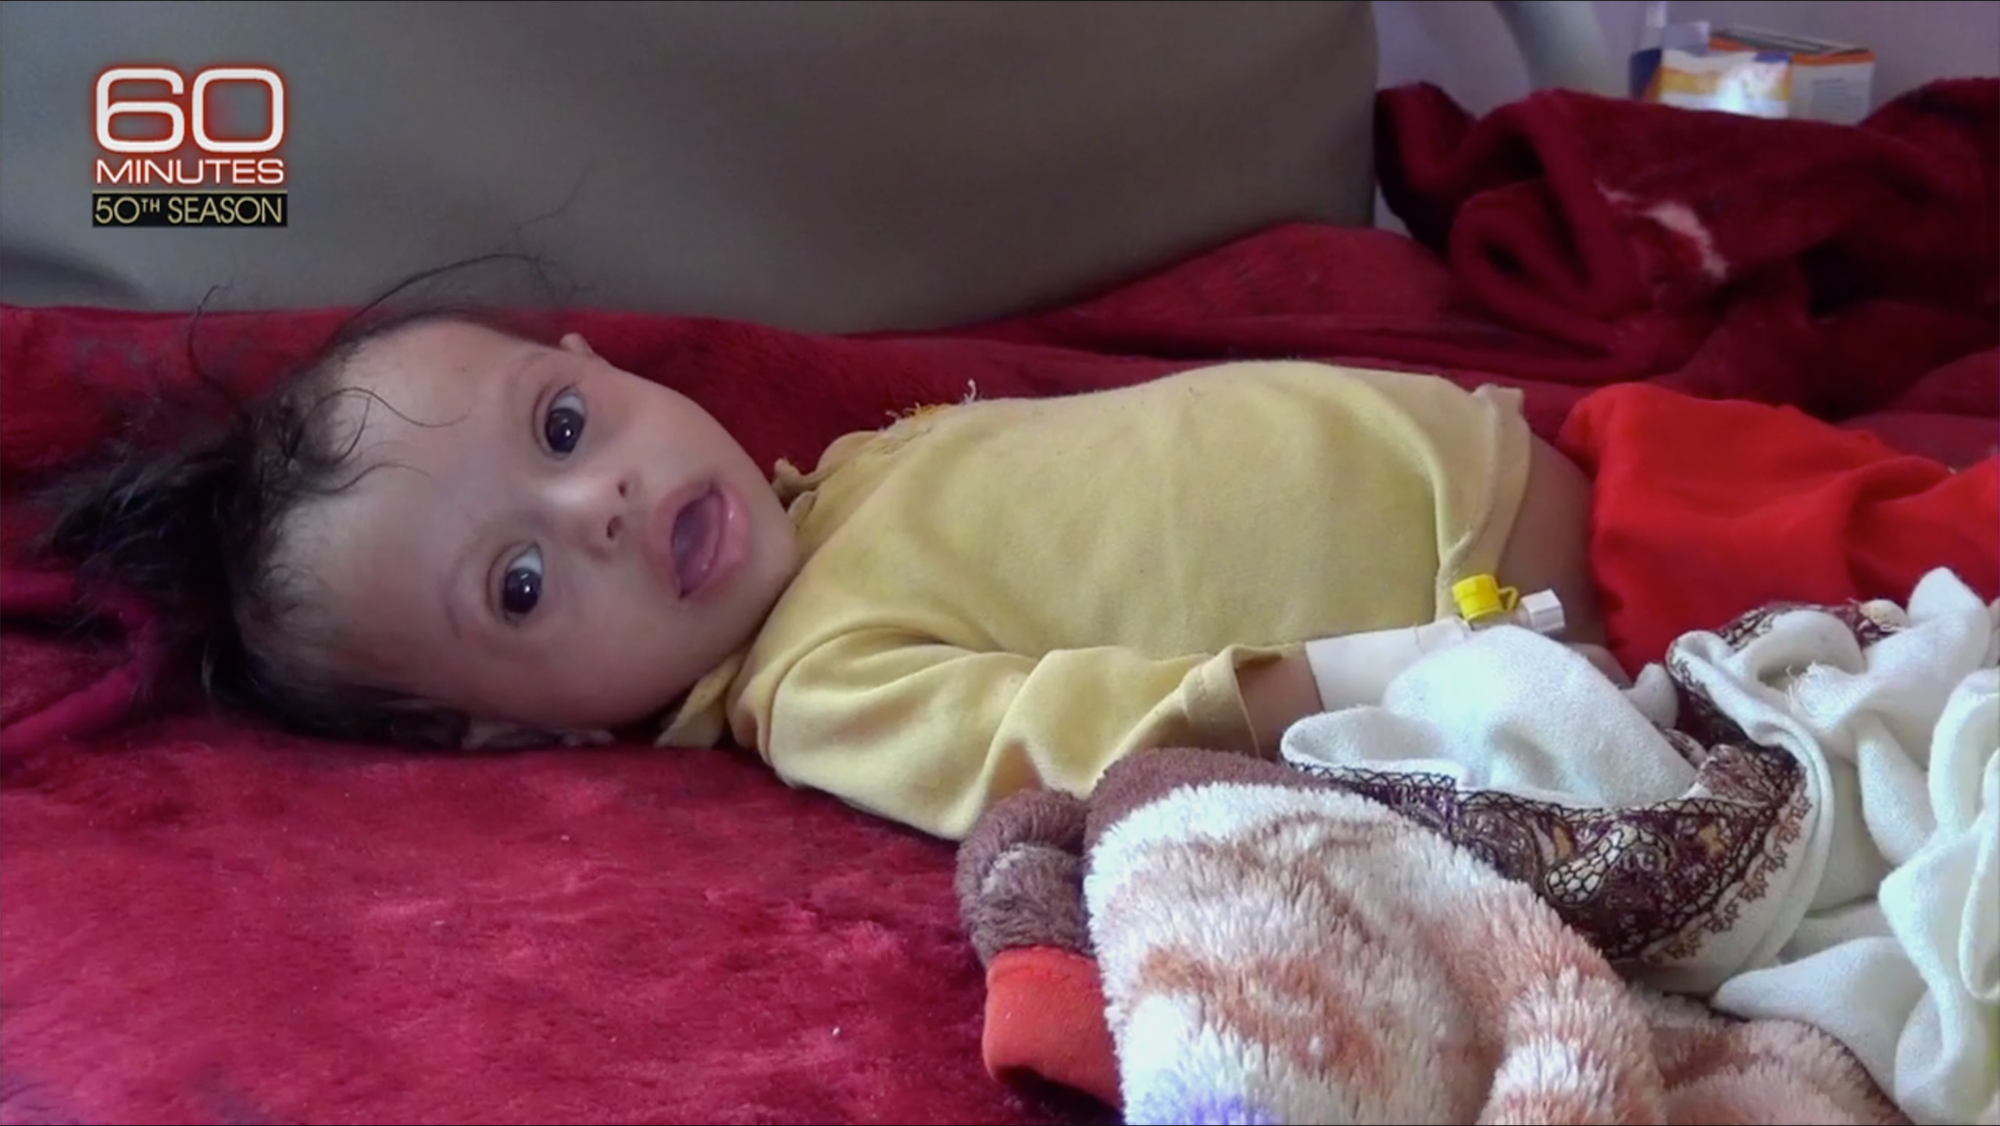 A child in yellow with large, sunken eyes and open mouth lies on a bed and looks at the camera